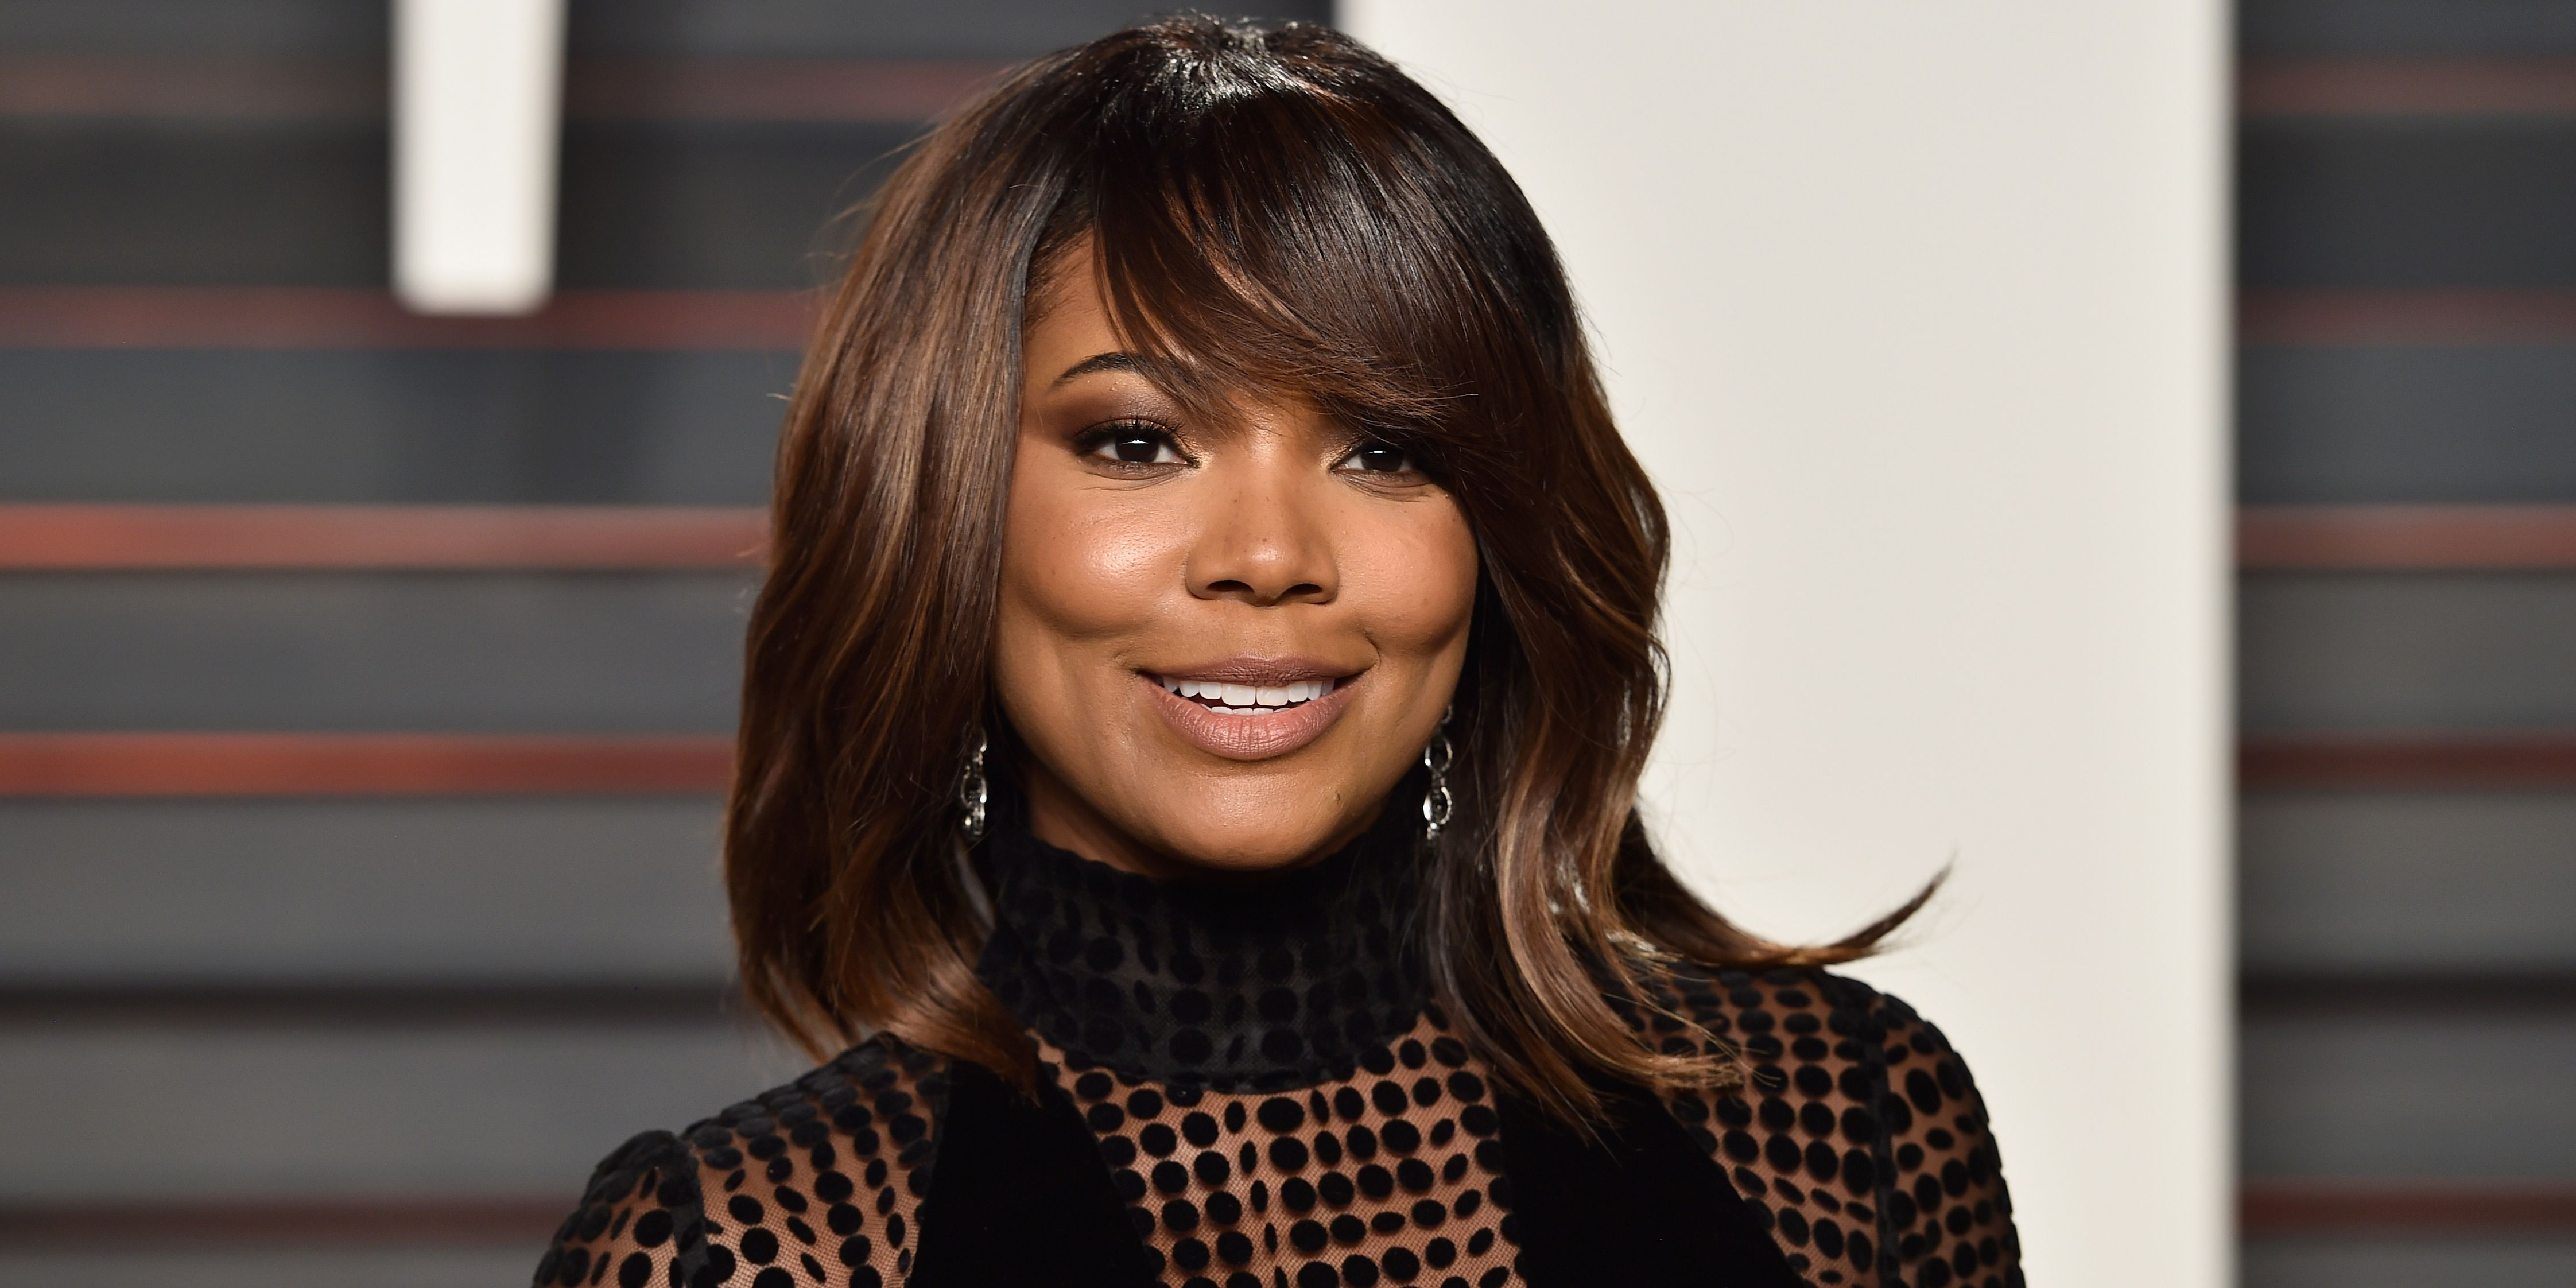 Gabrielle union is launching a hair care brand for natural hair gabrielle union is launching a hair care brand for natural hair gabrielle union launches hair brand with ulta pmusecretfo Choice Image